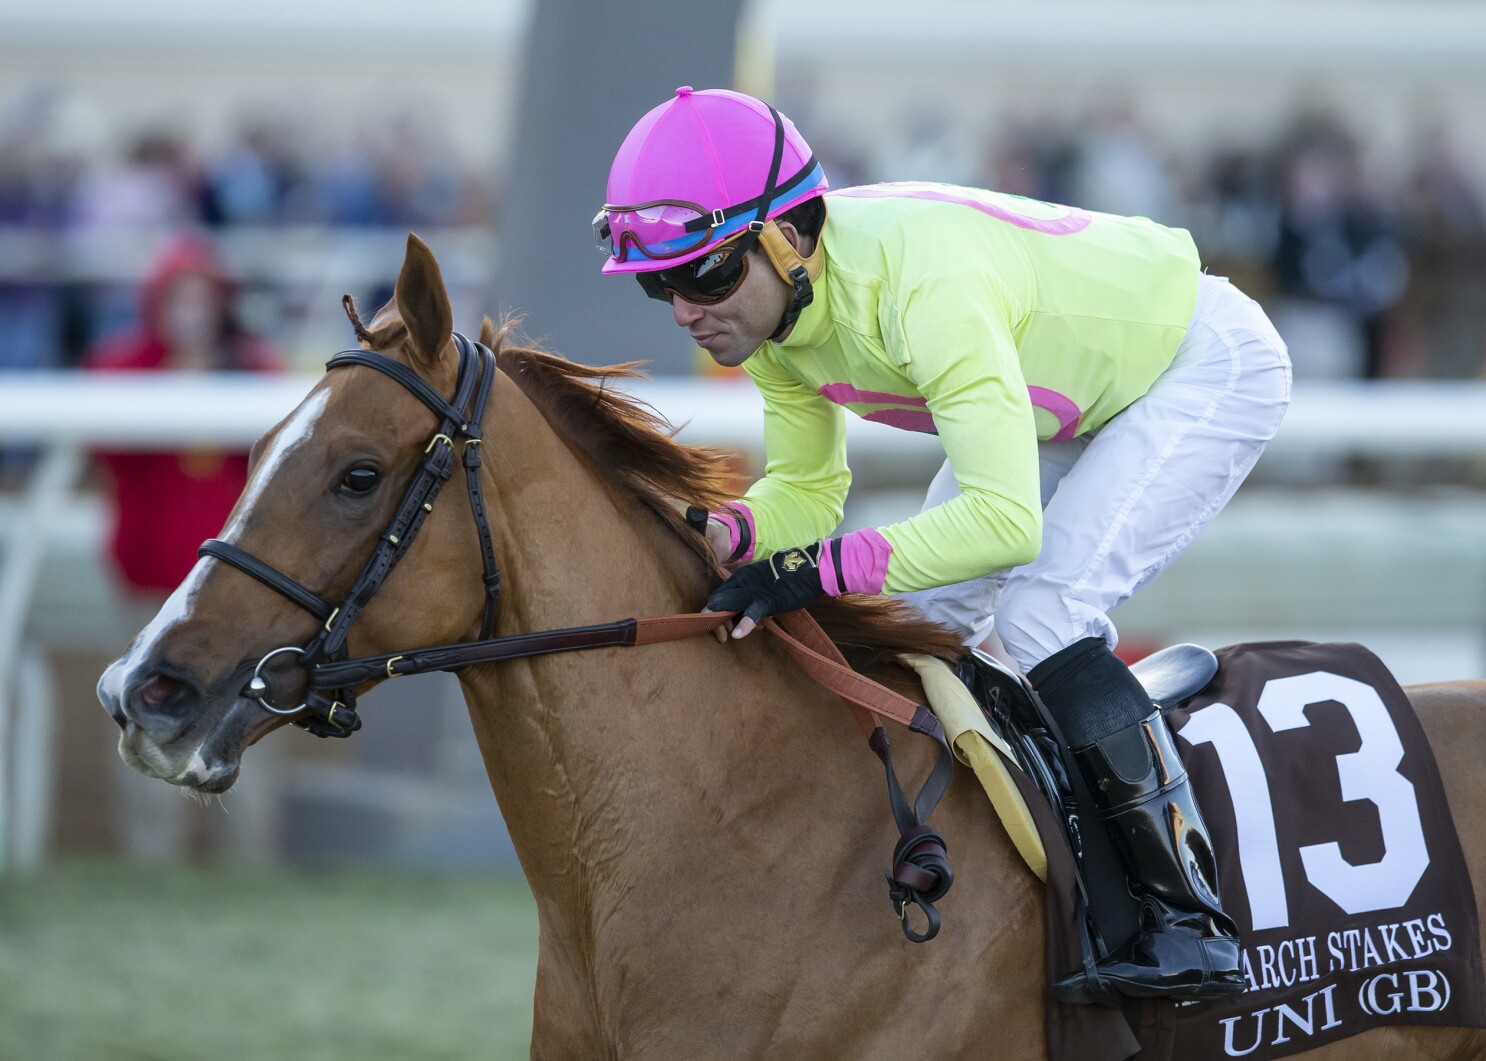 Del Mar faces scrutiny for racing meet after Breeders' Cup death